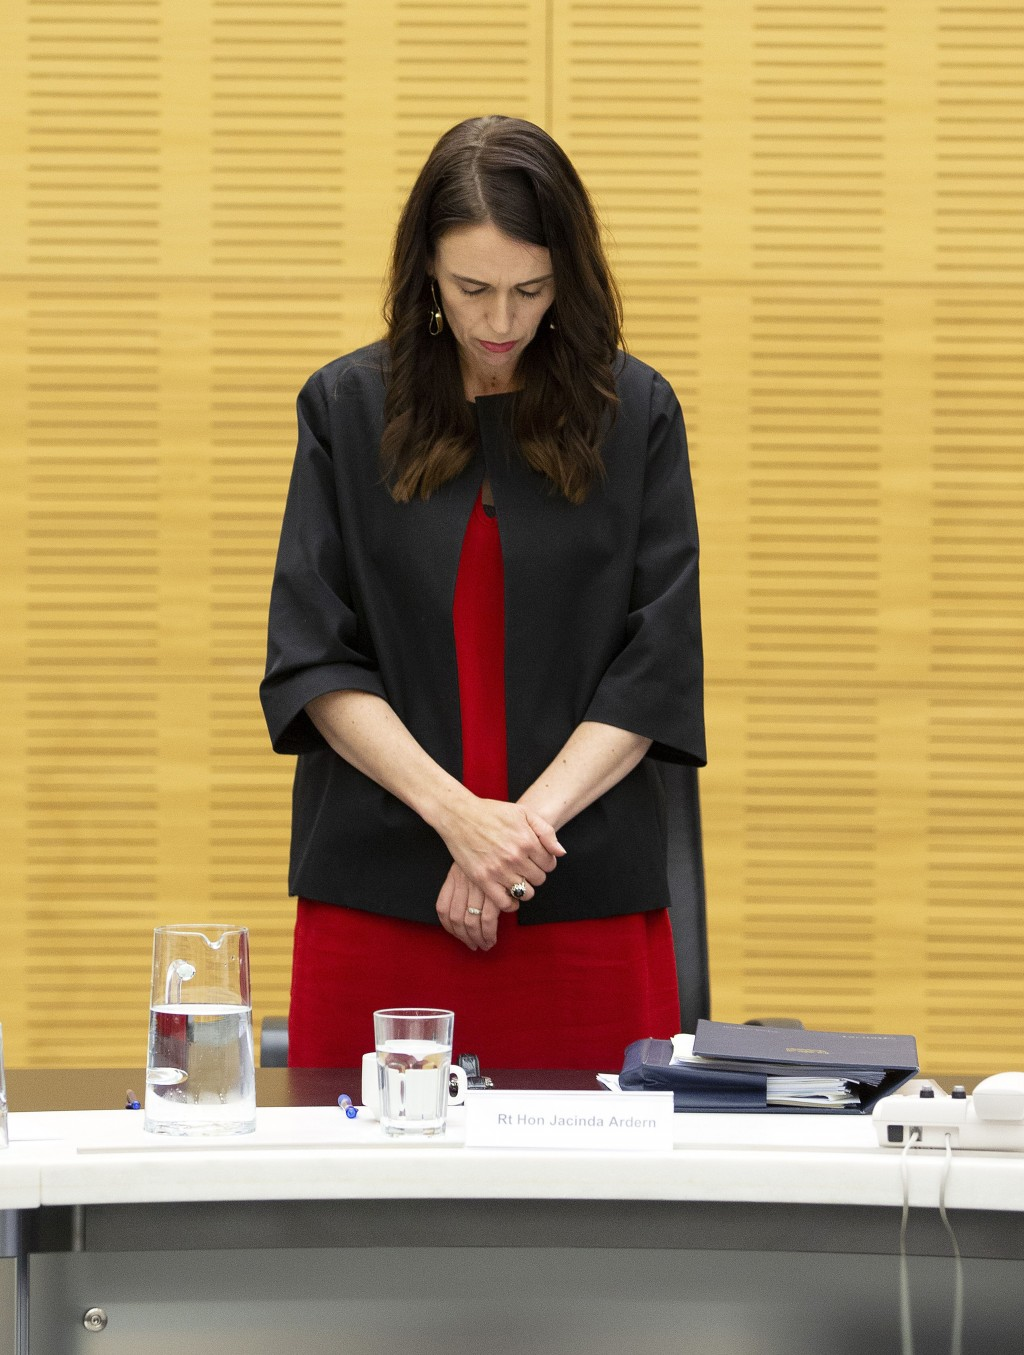 New Zealand Prime Minister Jacinda Ardern observes a moment of silence with her cabinet colleagues at the moment that a volcano erupted a week earlier...